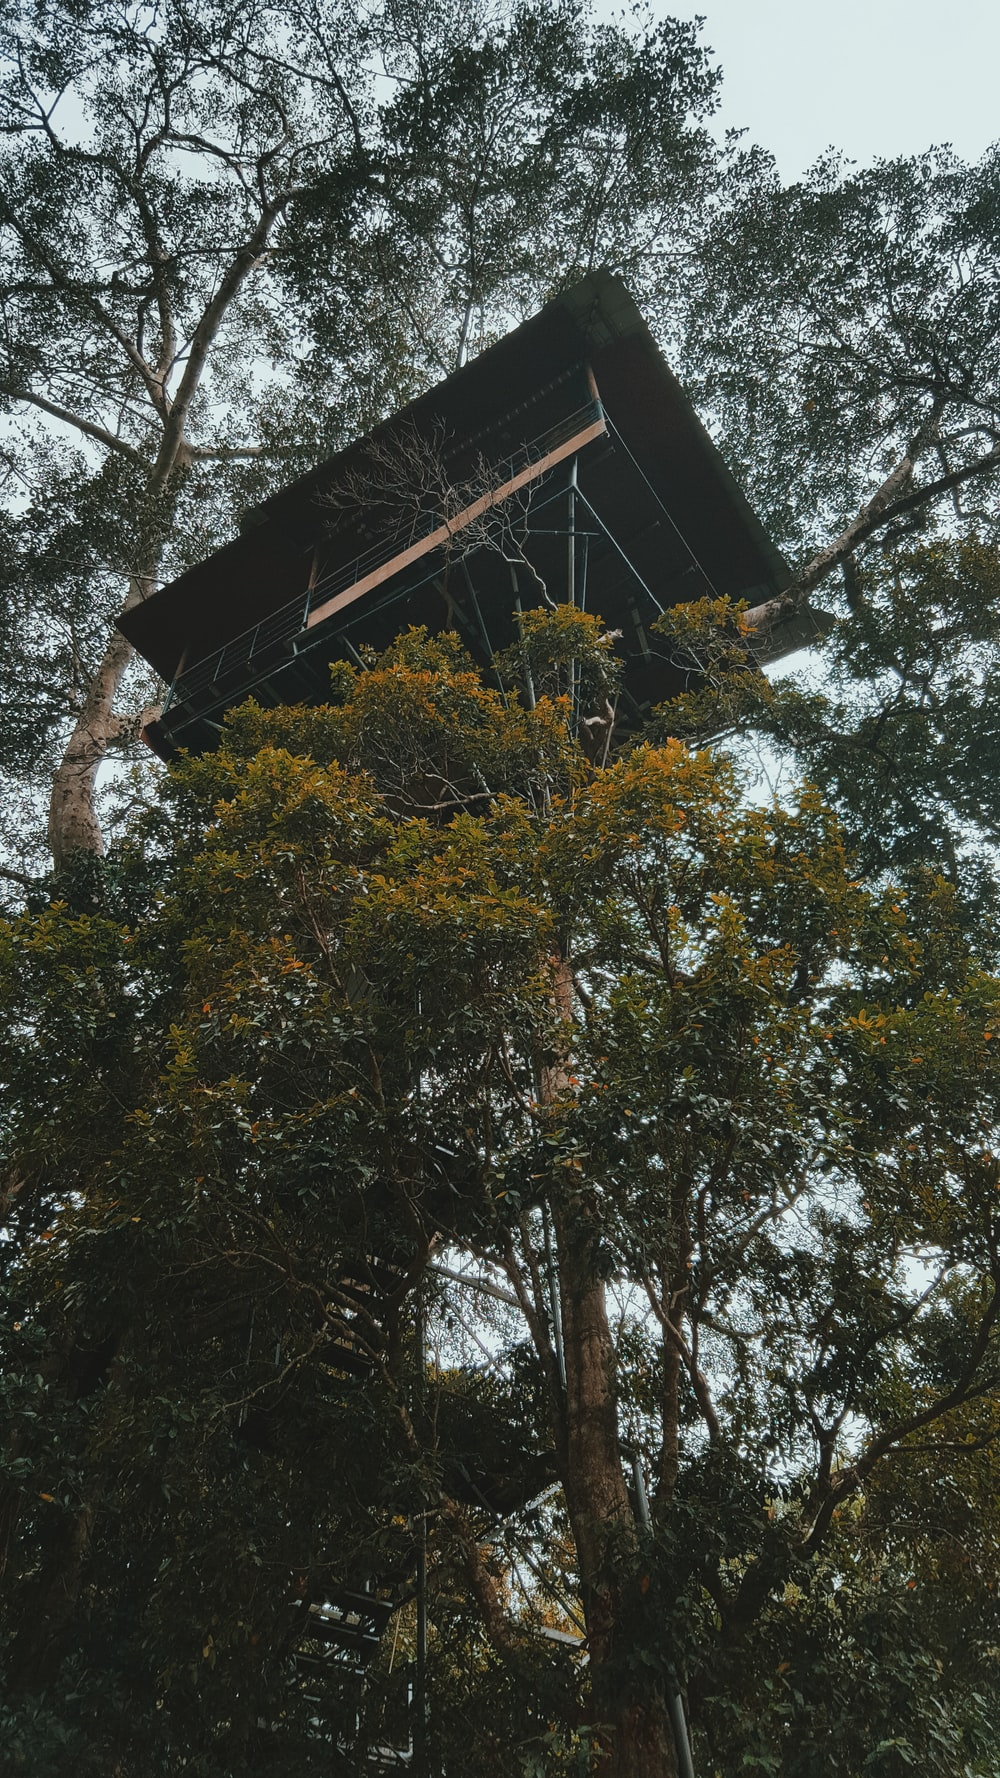 green-leafed tree with tree house during daytime